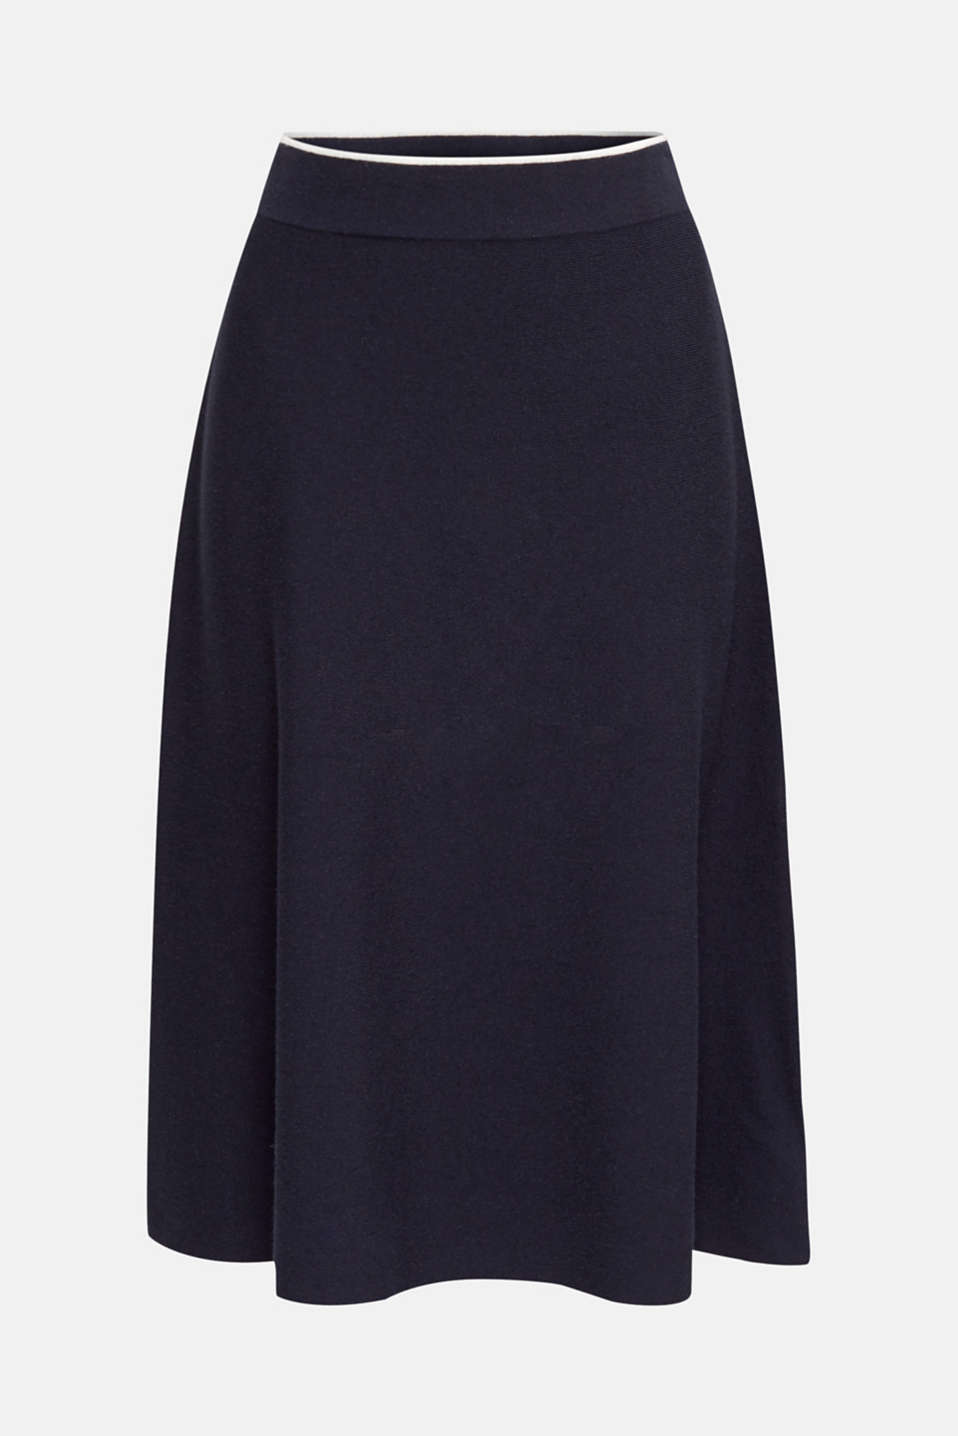 Knitted A-line skirt with a contrasting waistband, NAVY, detail image number 6